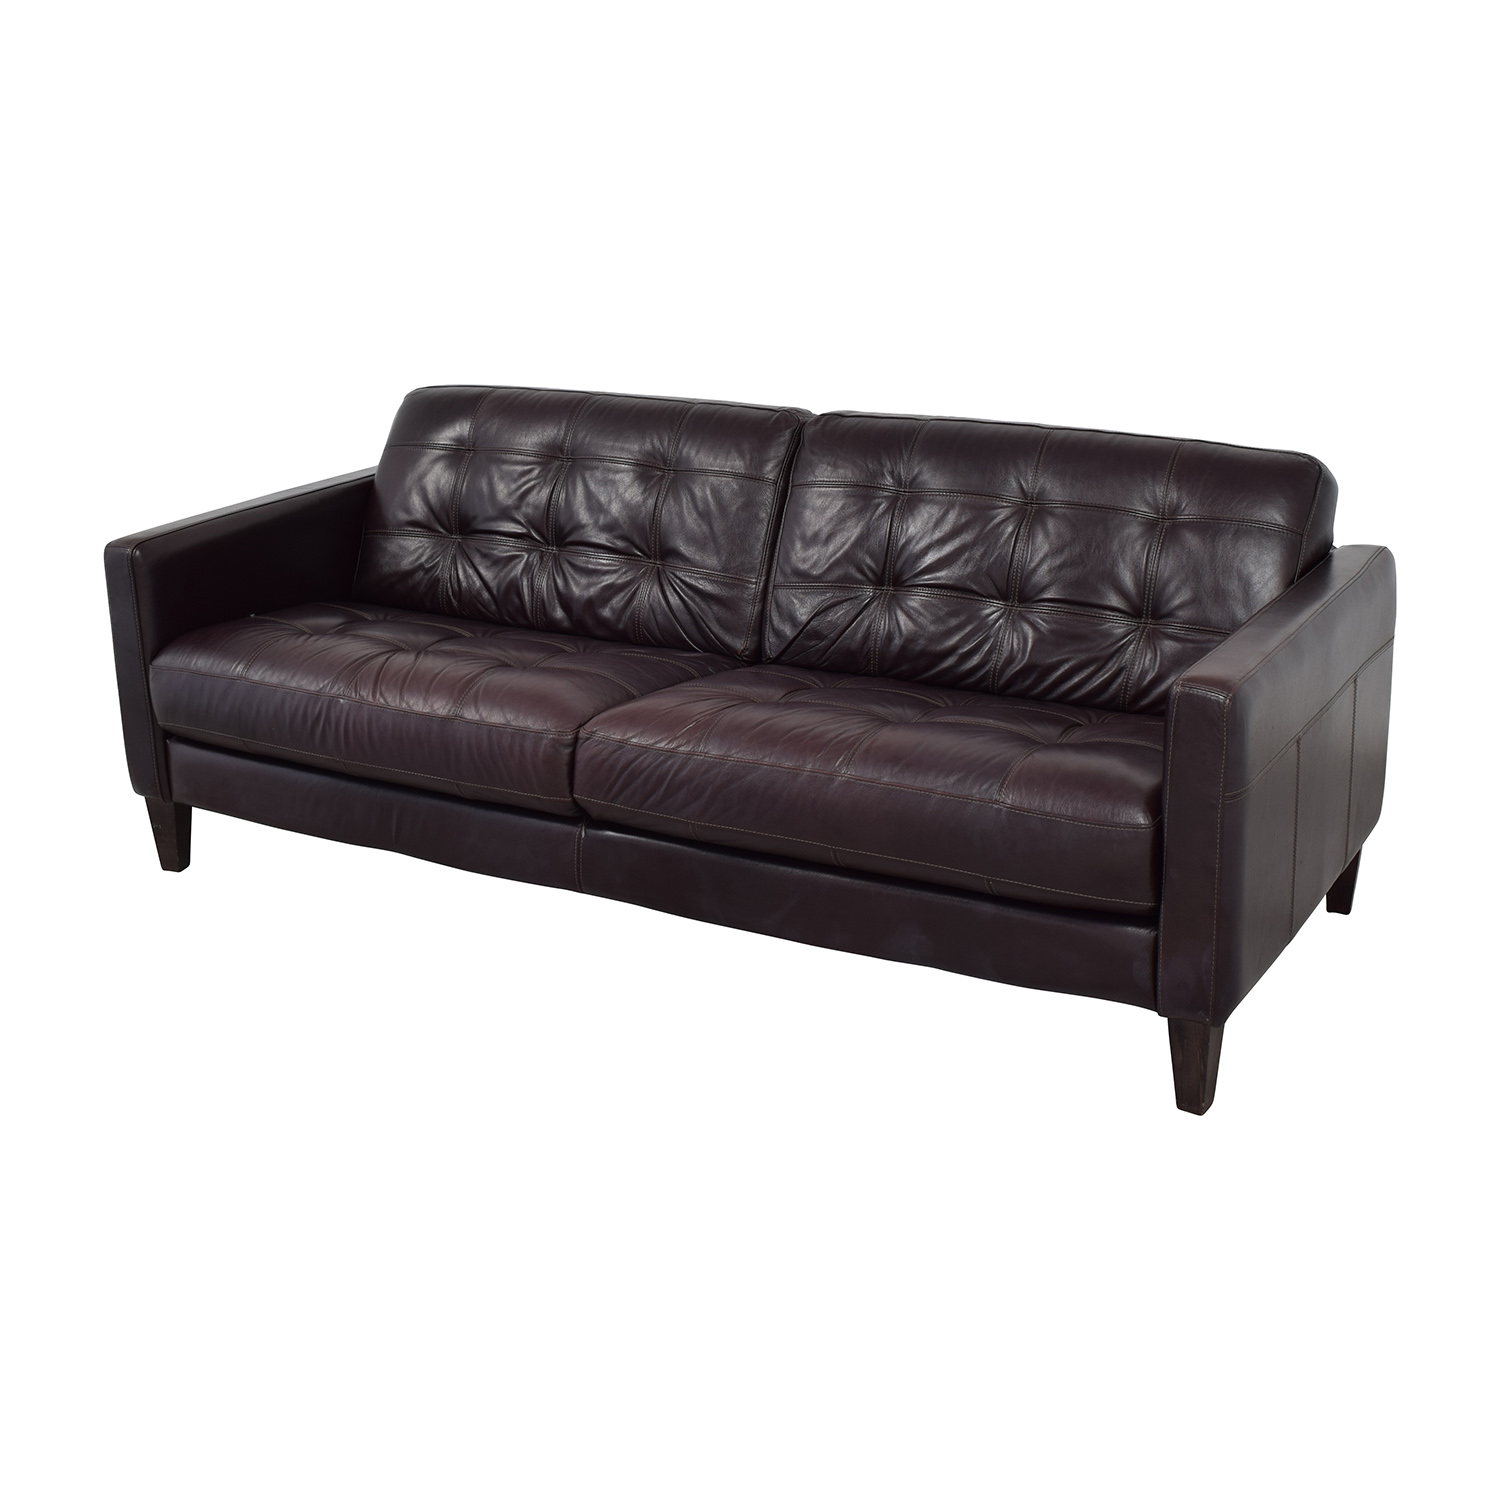 59 off macy 39 s macy 39 s milan leather sofa sofas for Classic loveseat